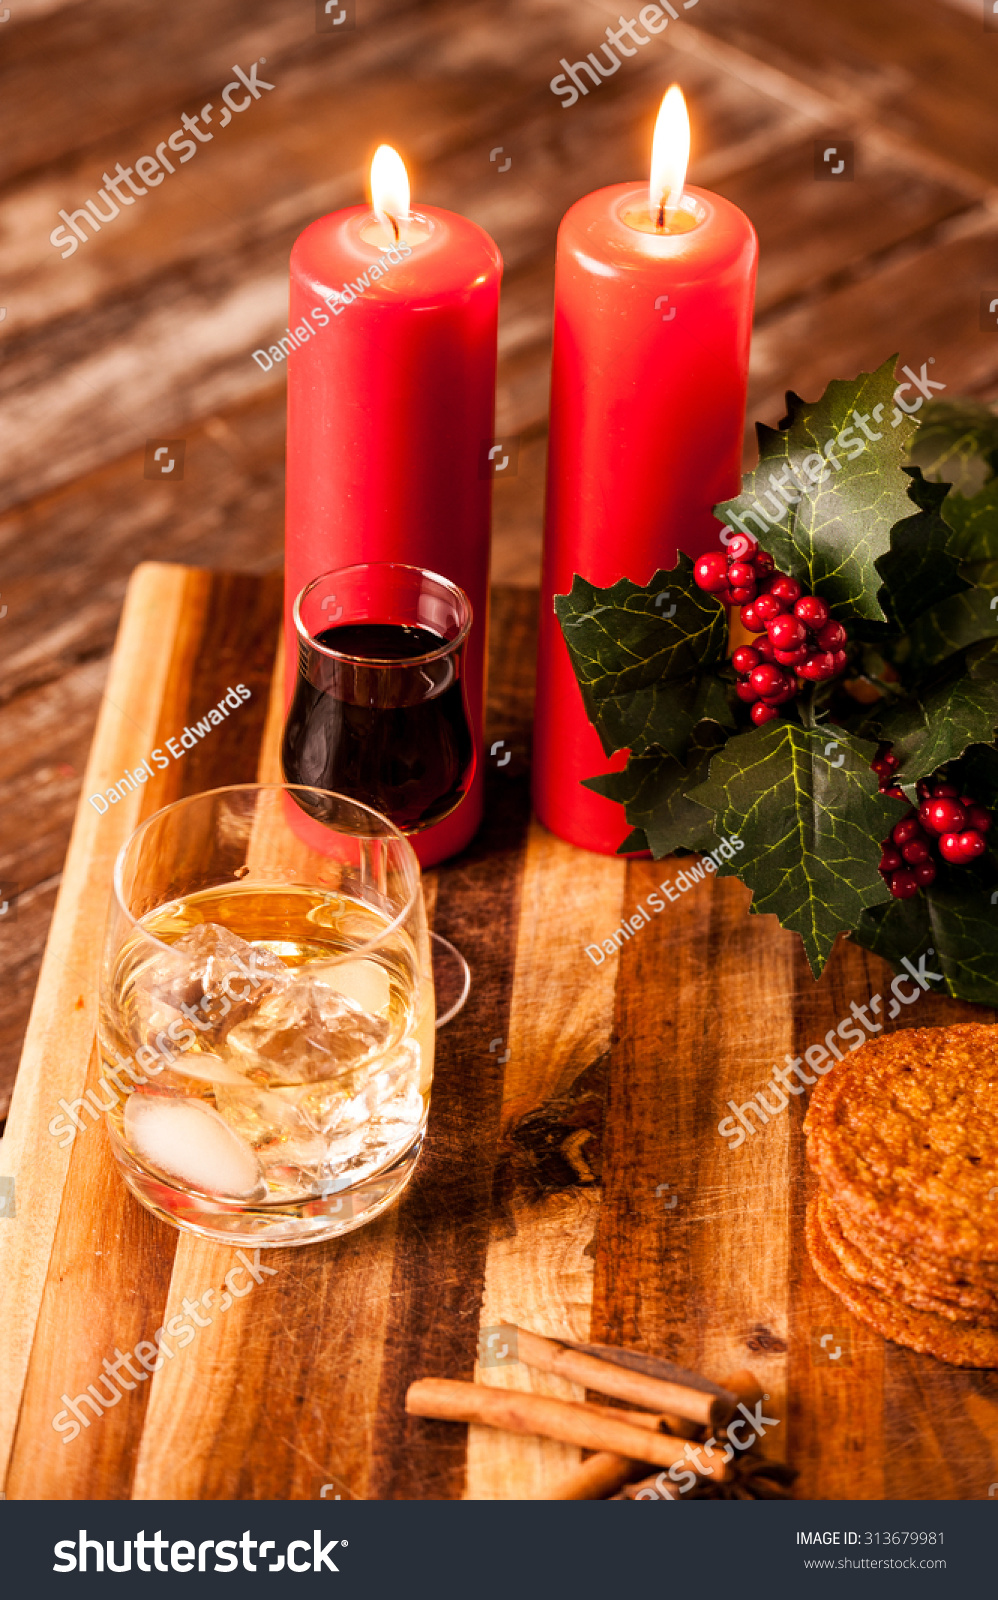 selection of christmas snacks and decorations on a wooden table - Christmas Eve Snacks